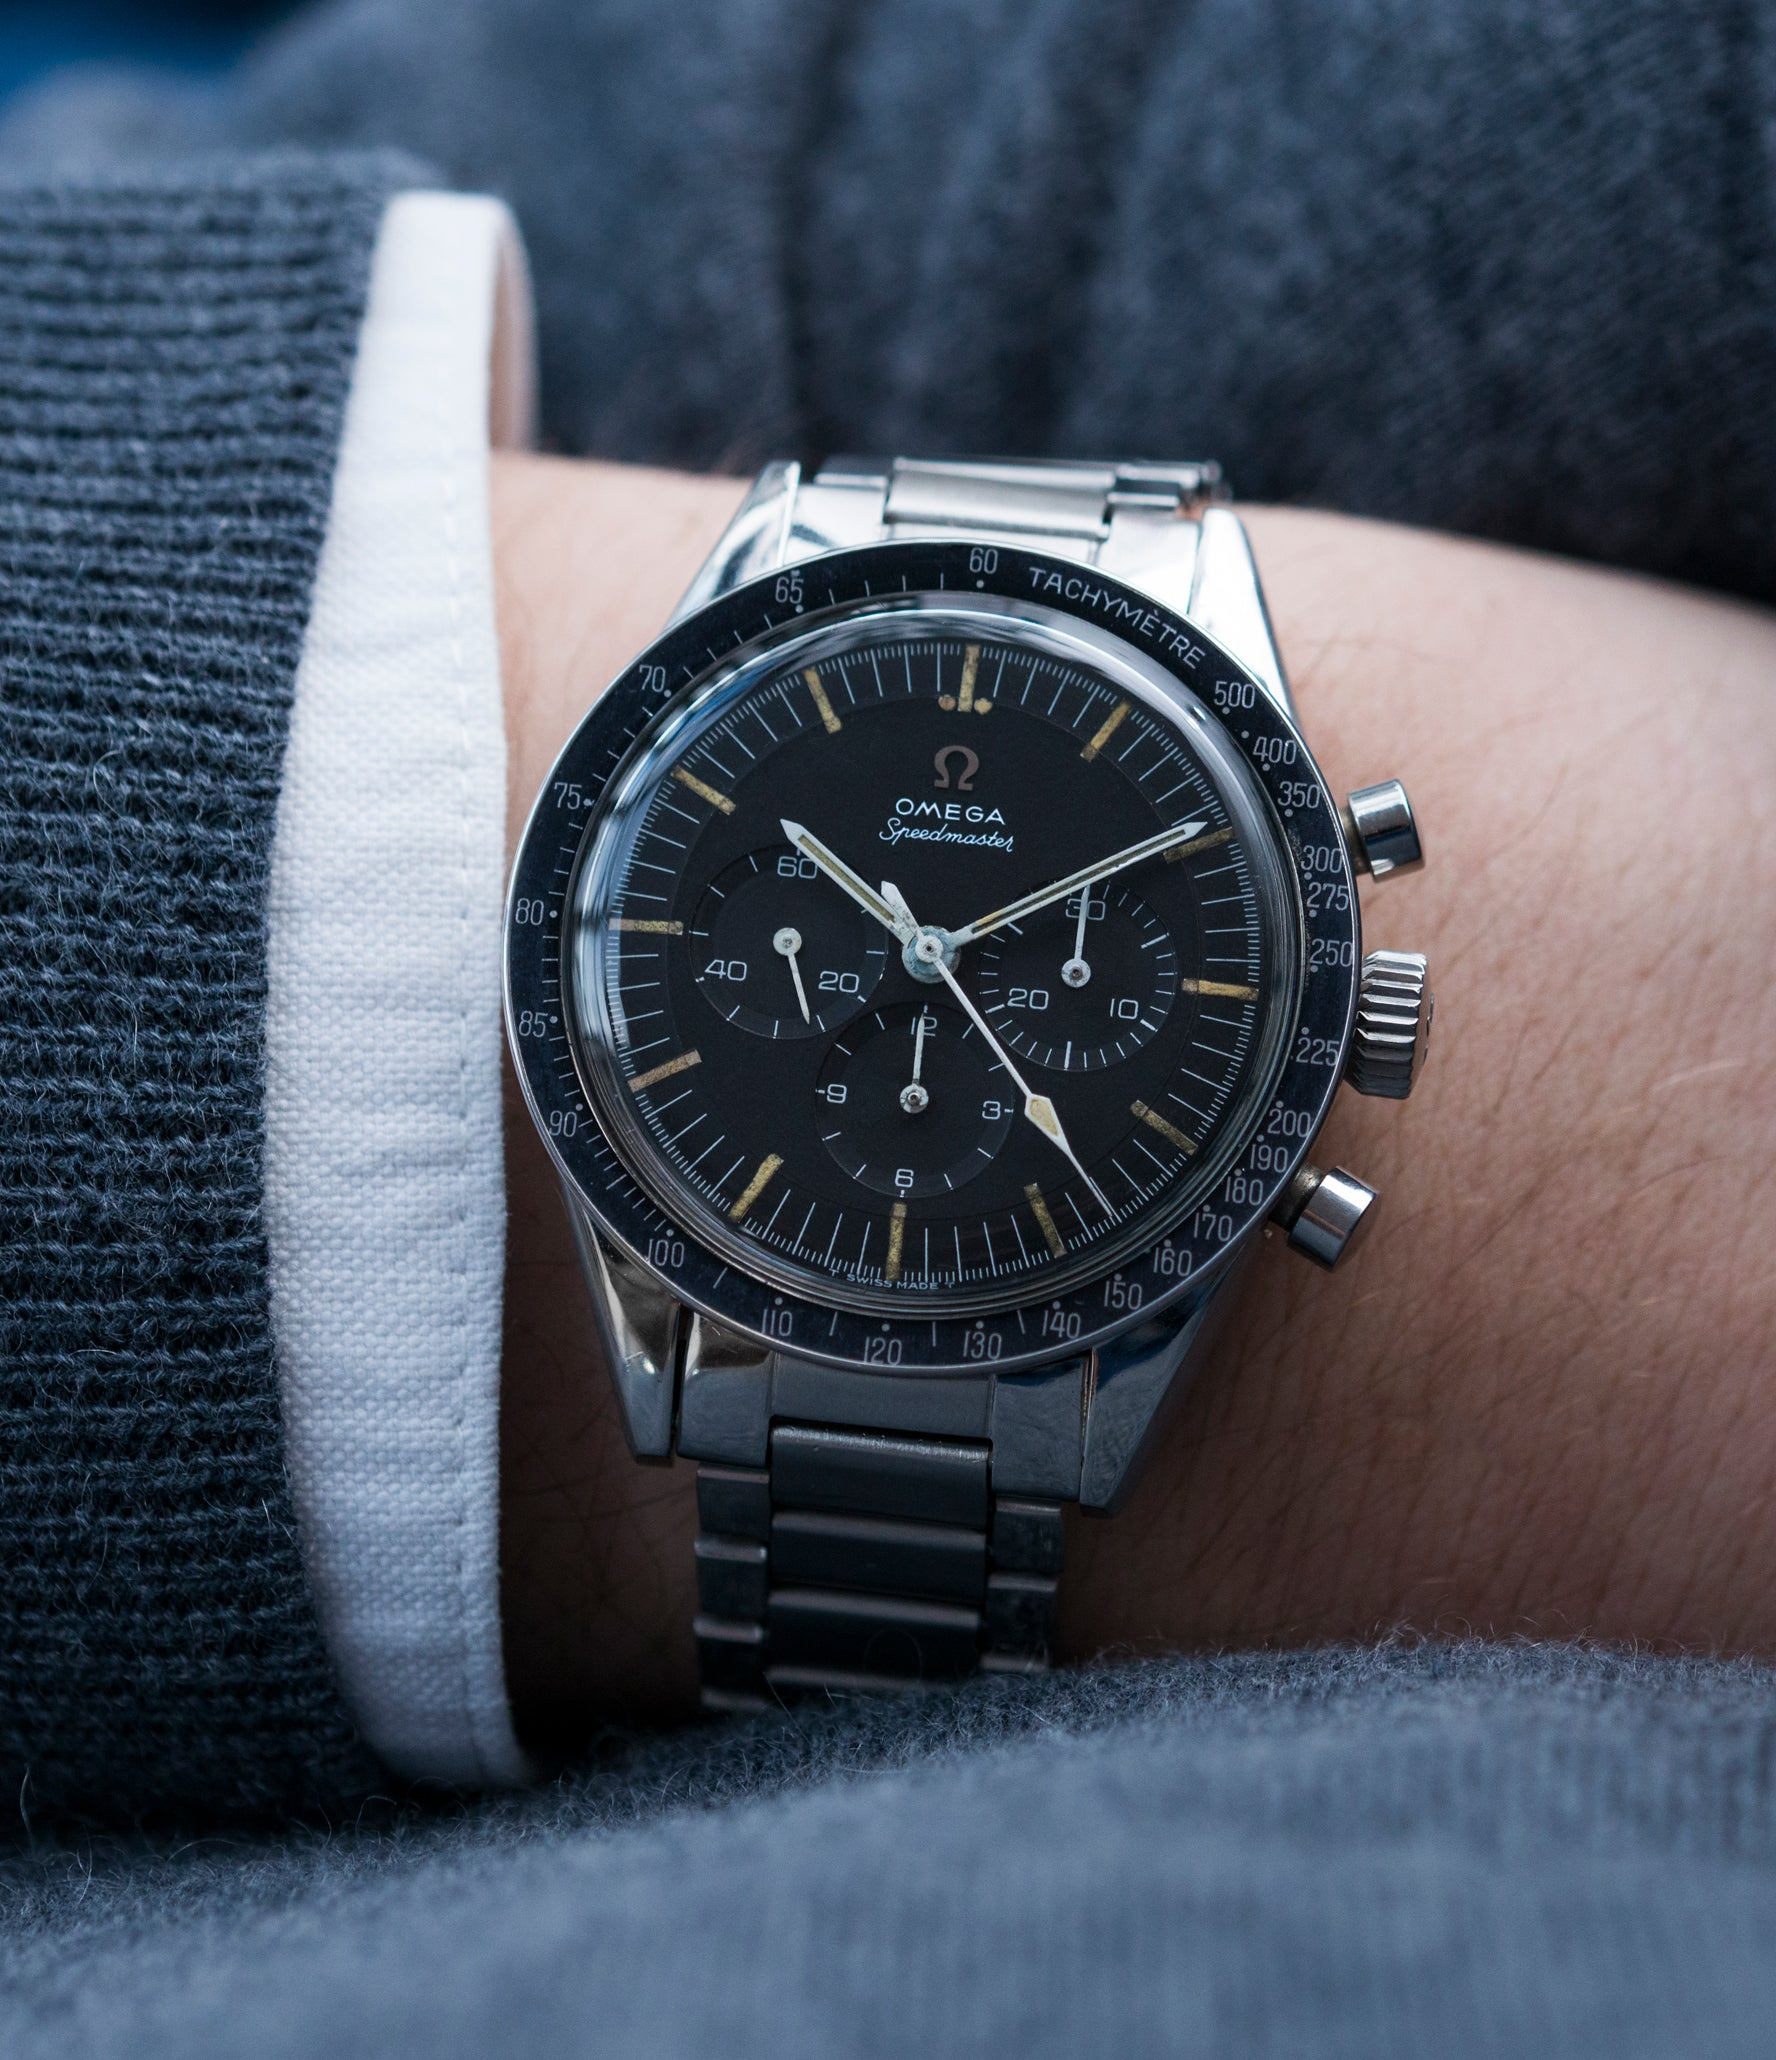 Speedmaster 105.003 Pre-Professional Ed White Omega  steel vintage chronograph 7912 flat-link bracelet for sale online at A Collected Man UK specialist of rare vintage watches